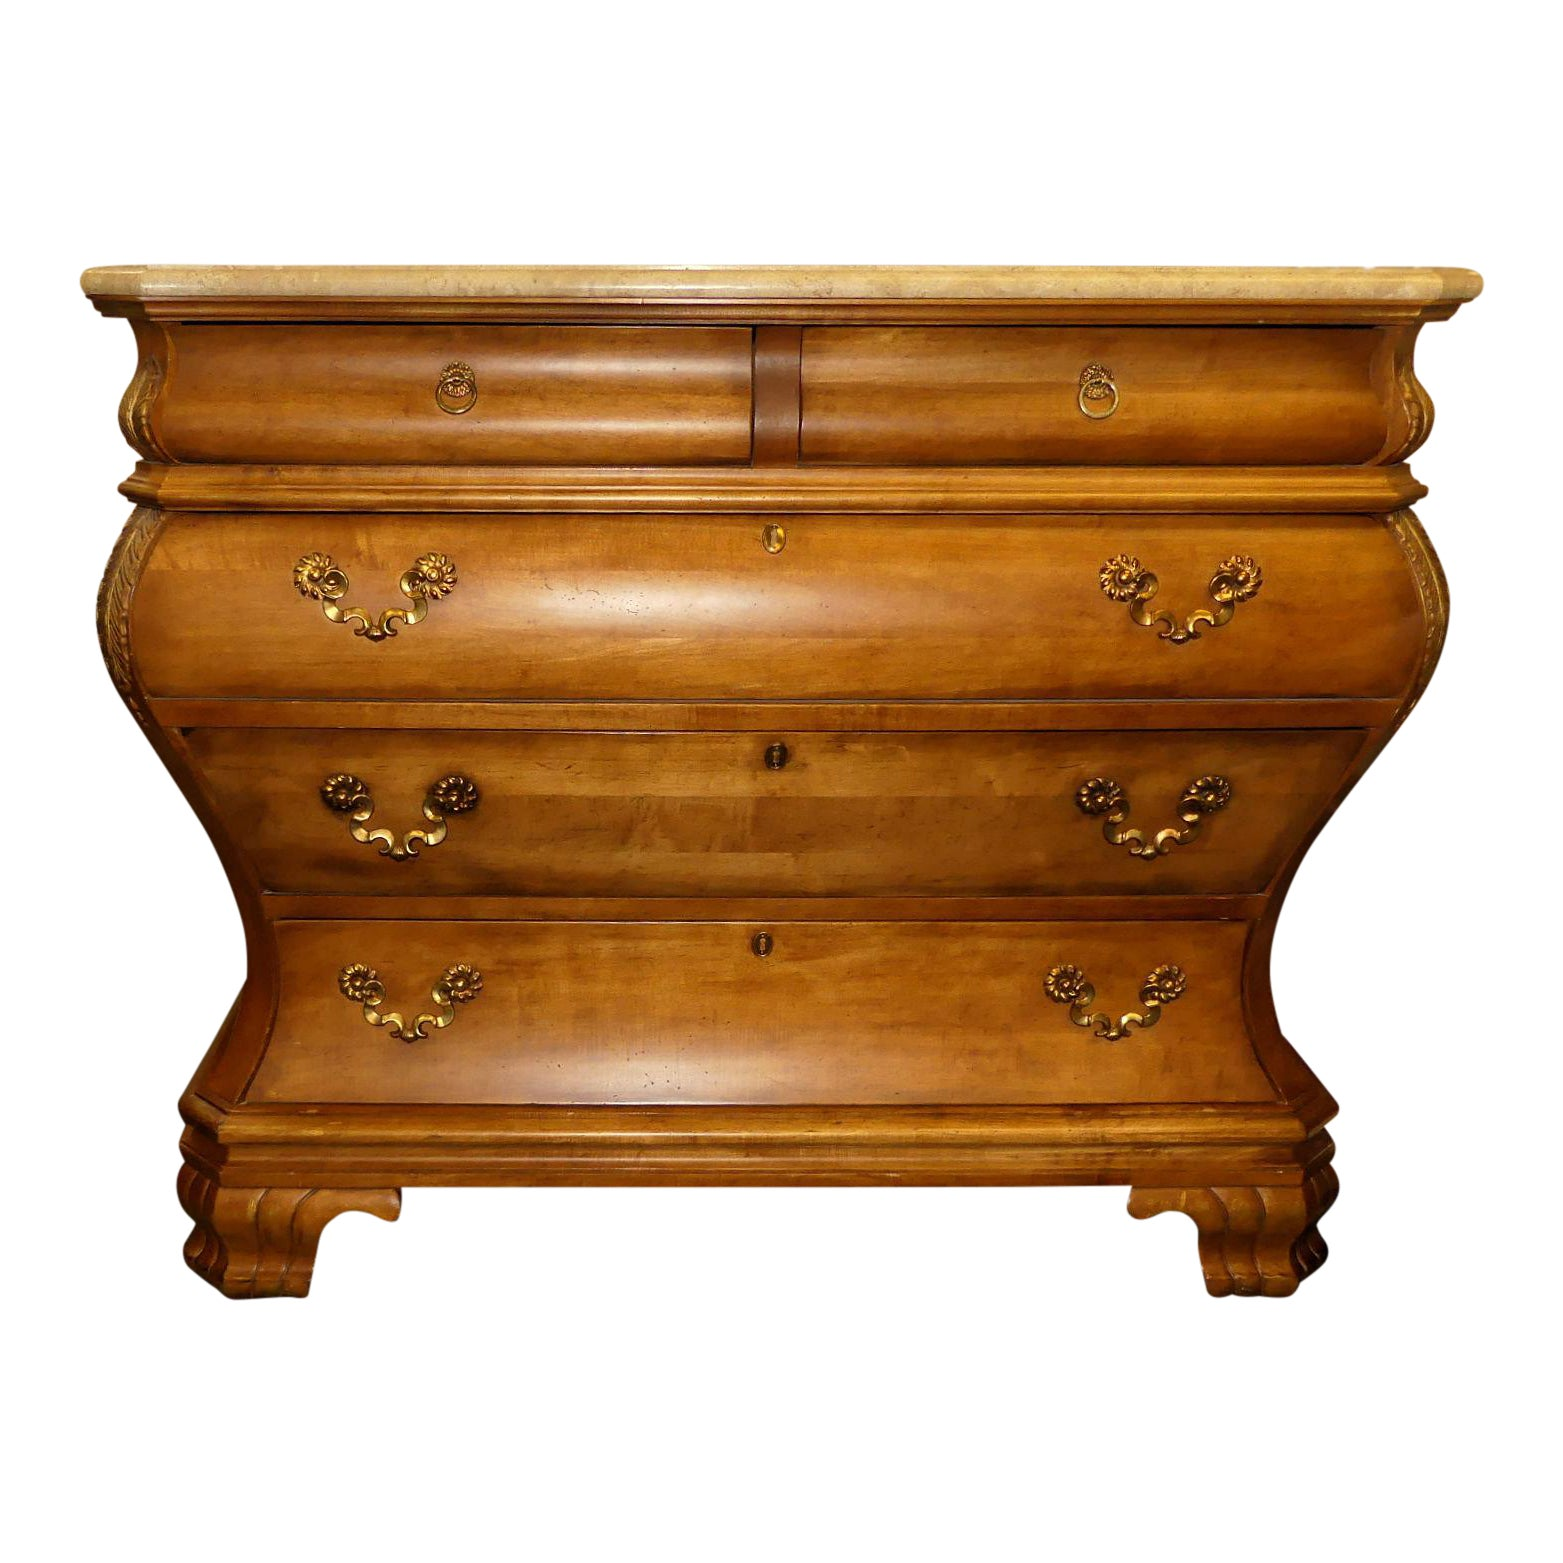 Century Furniture Marble Top Bombe Master Chest of Drawers